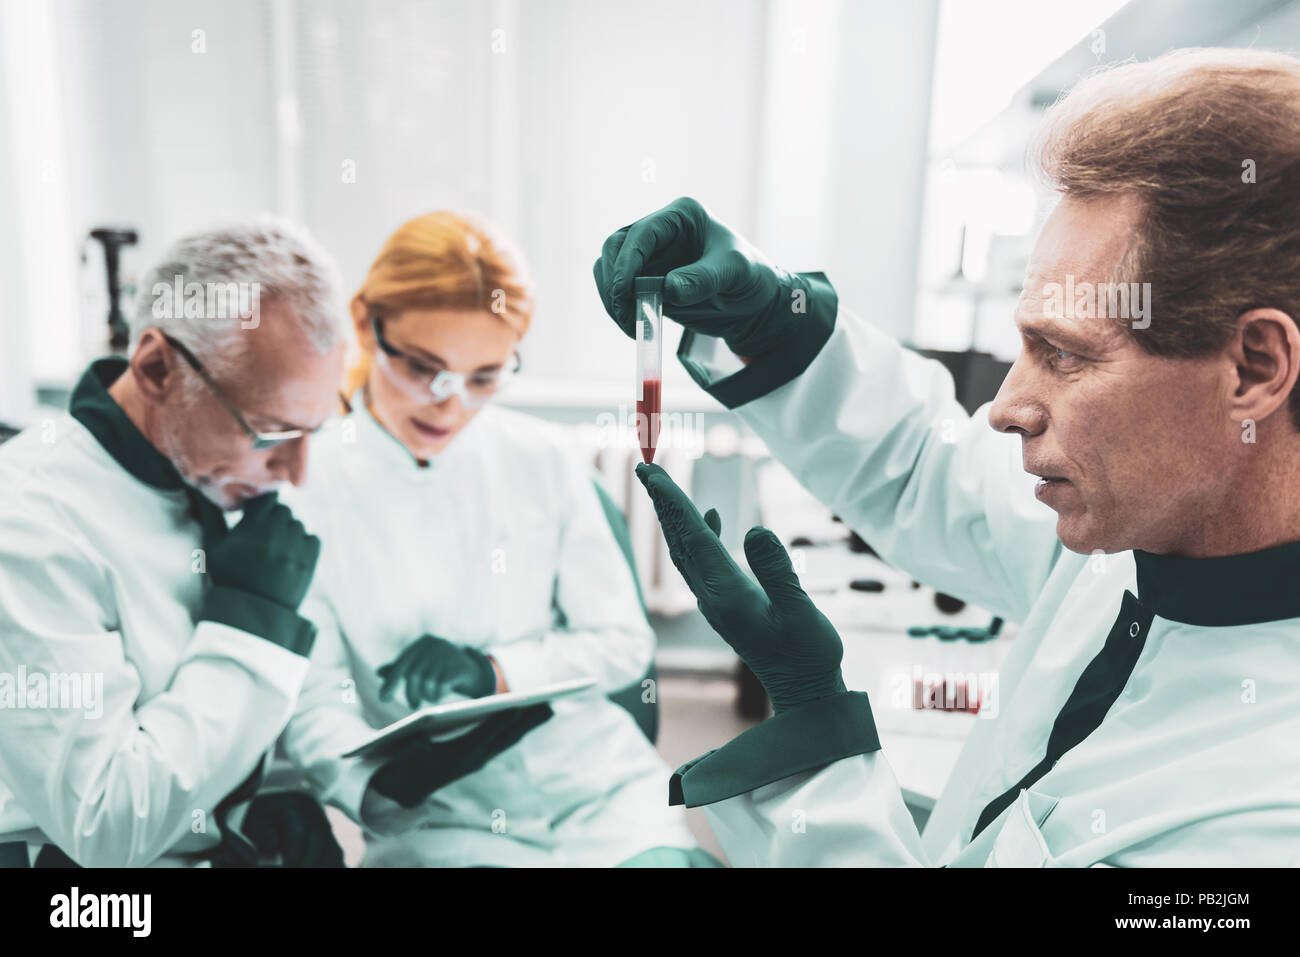 Famous chemist completing sensational discovery - Stock Image